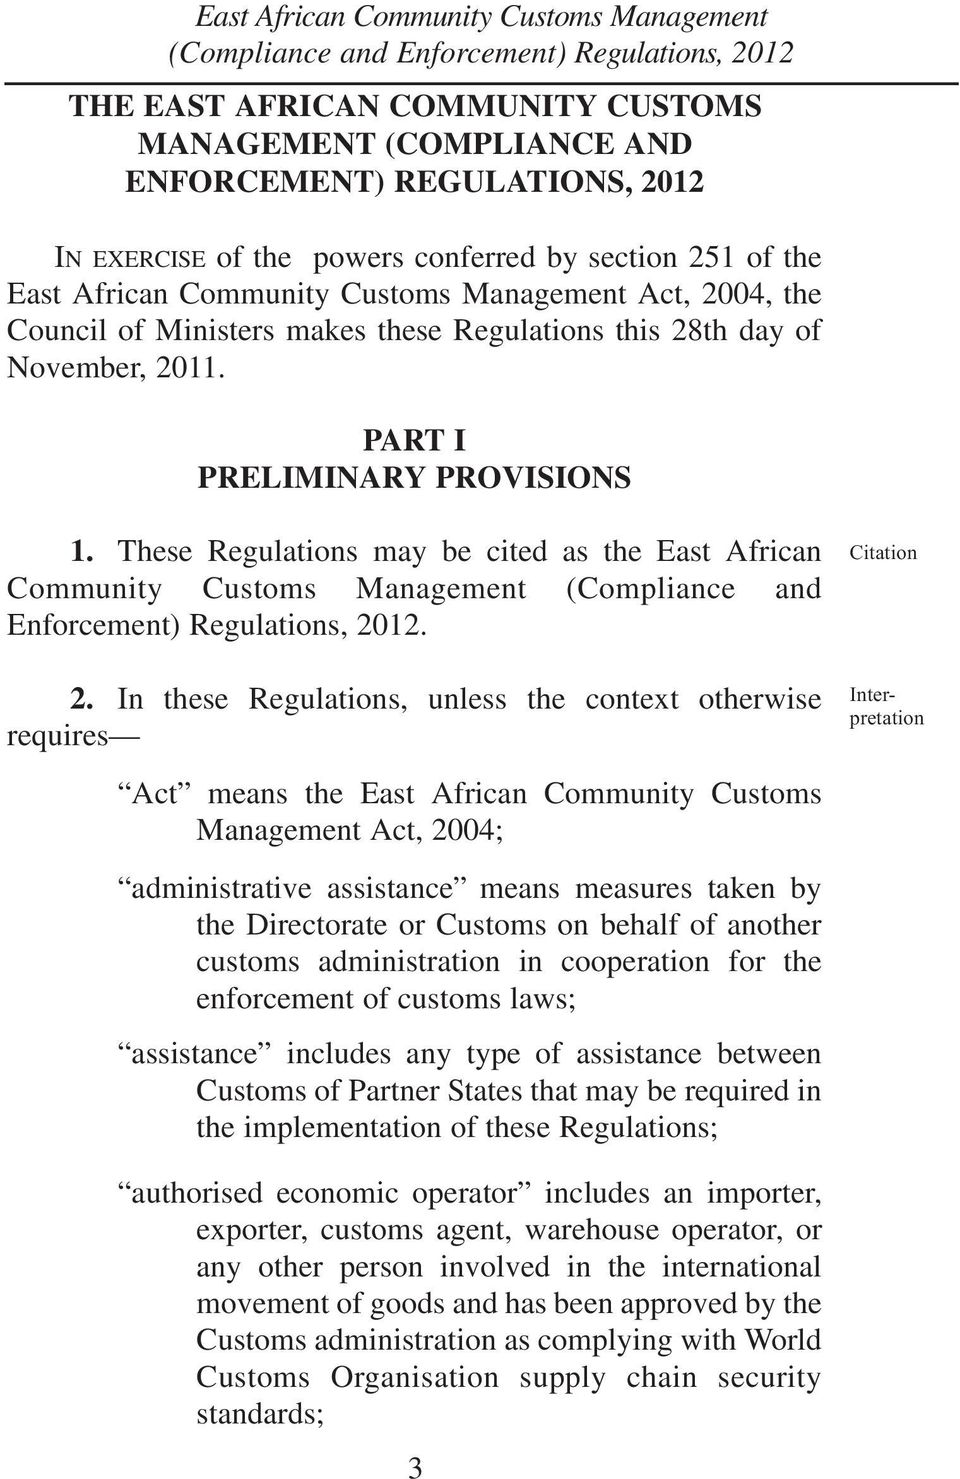 These Regulations may be cited as the East African Community Customs Management (Compliance and Enforcement) Regulations, 20